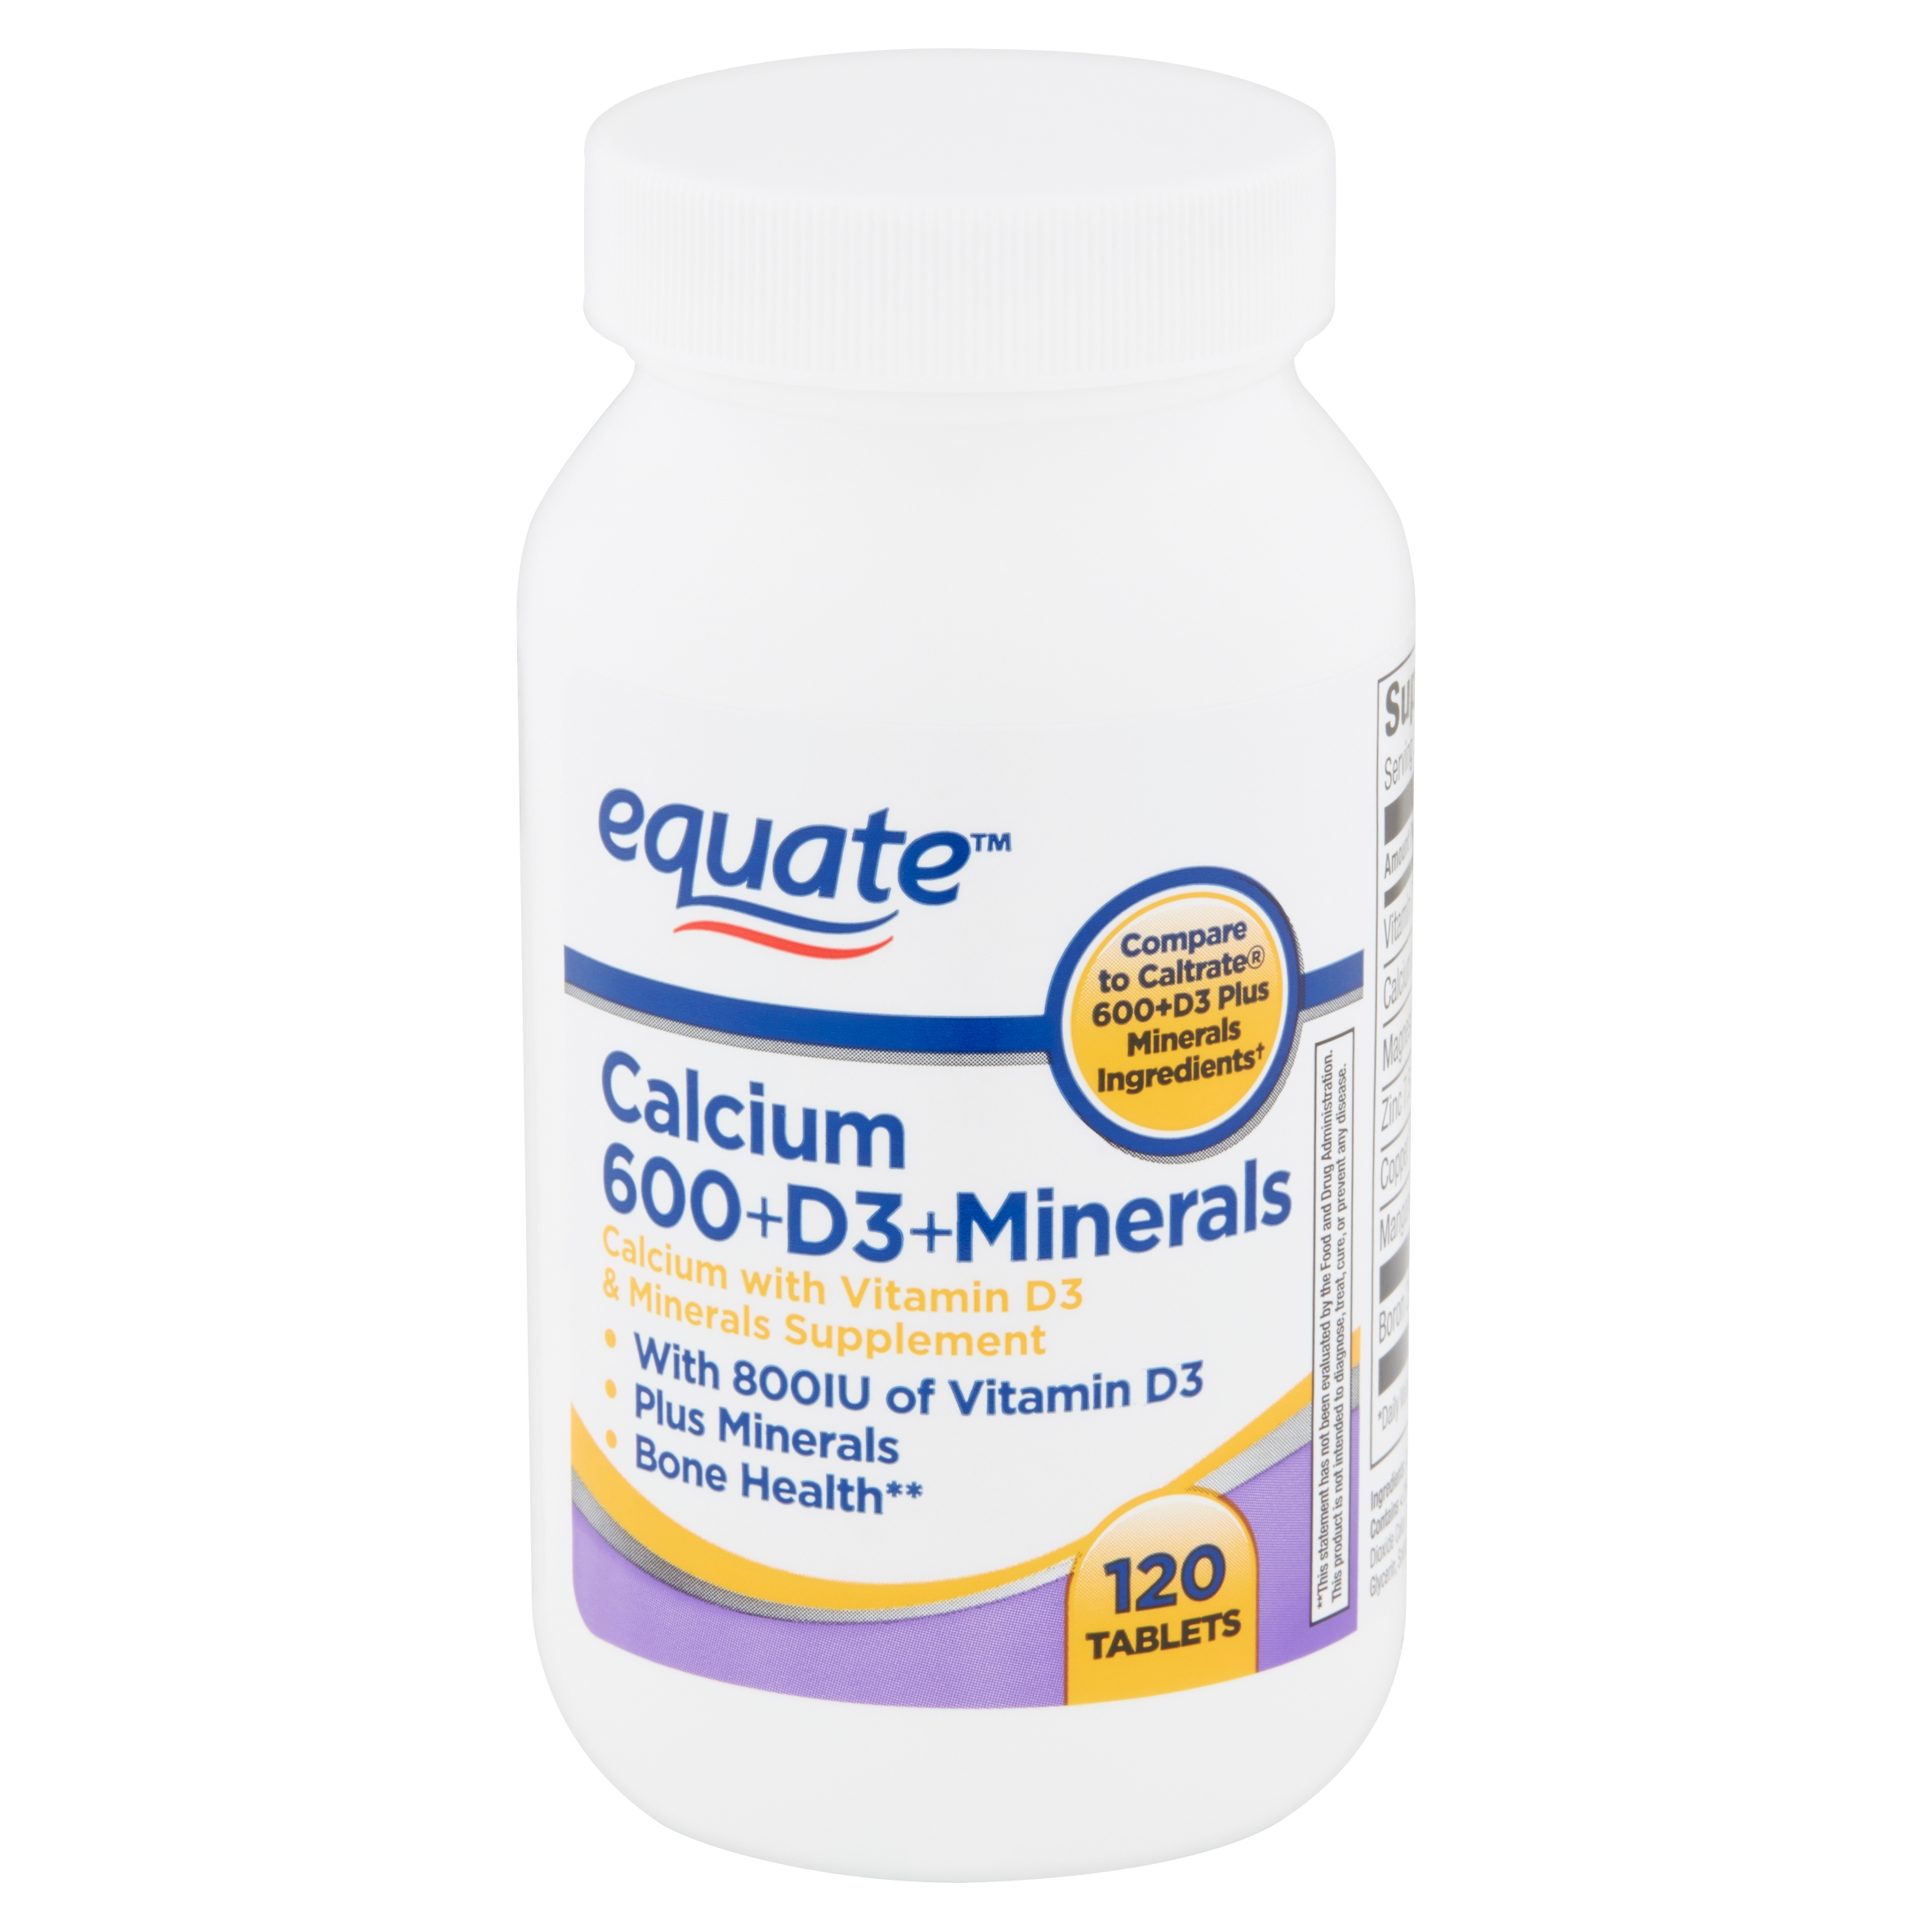 Equate Calcium 600+D3+Minerals Tablets, 120 count